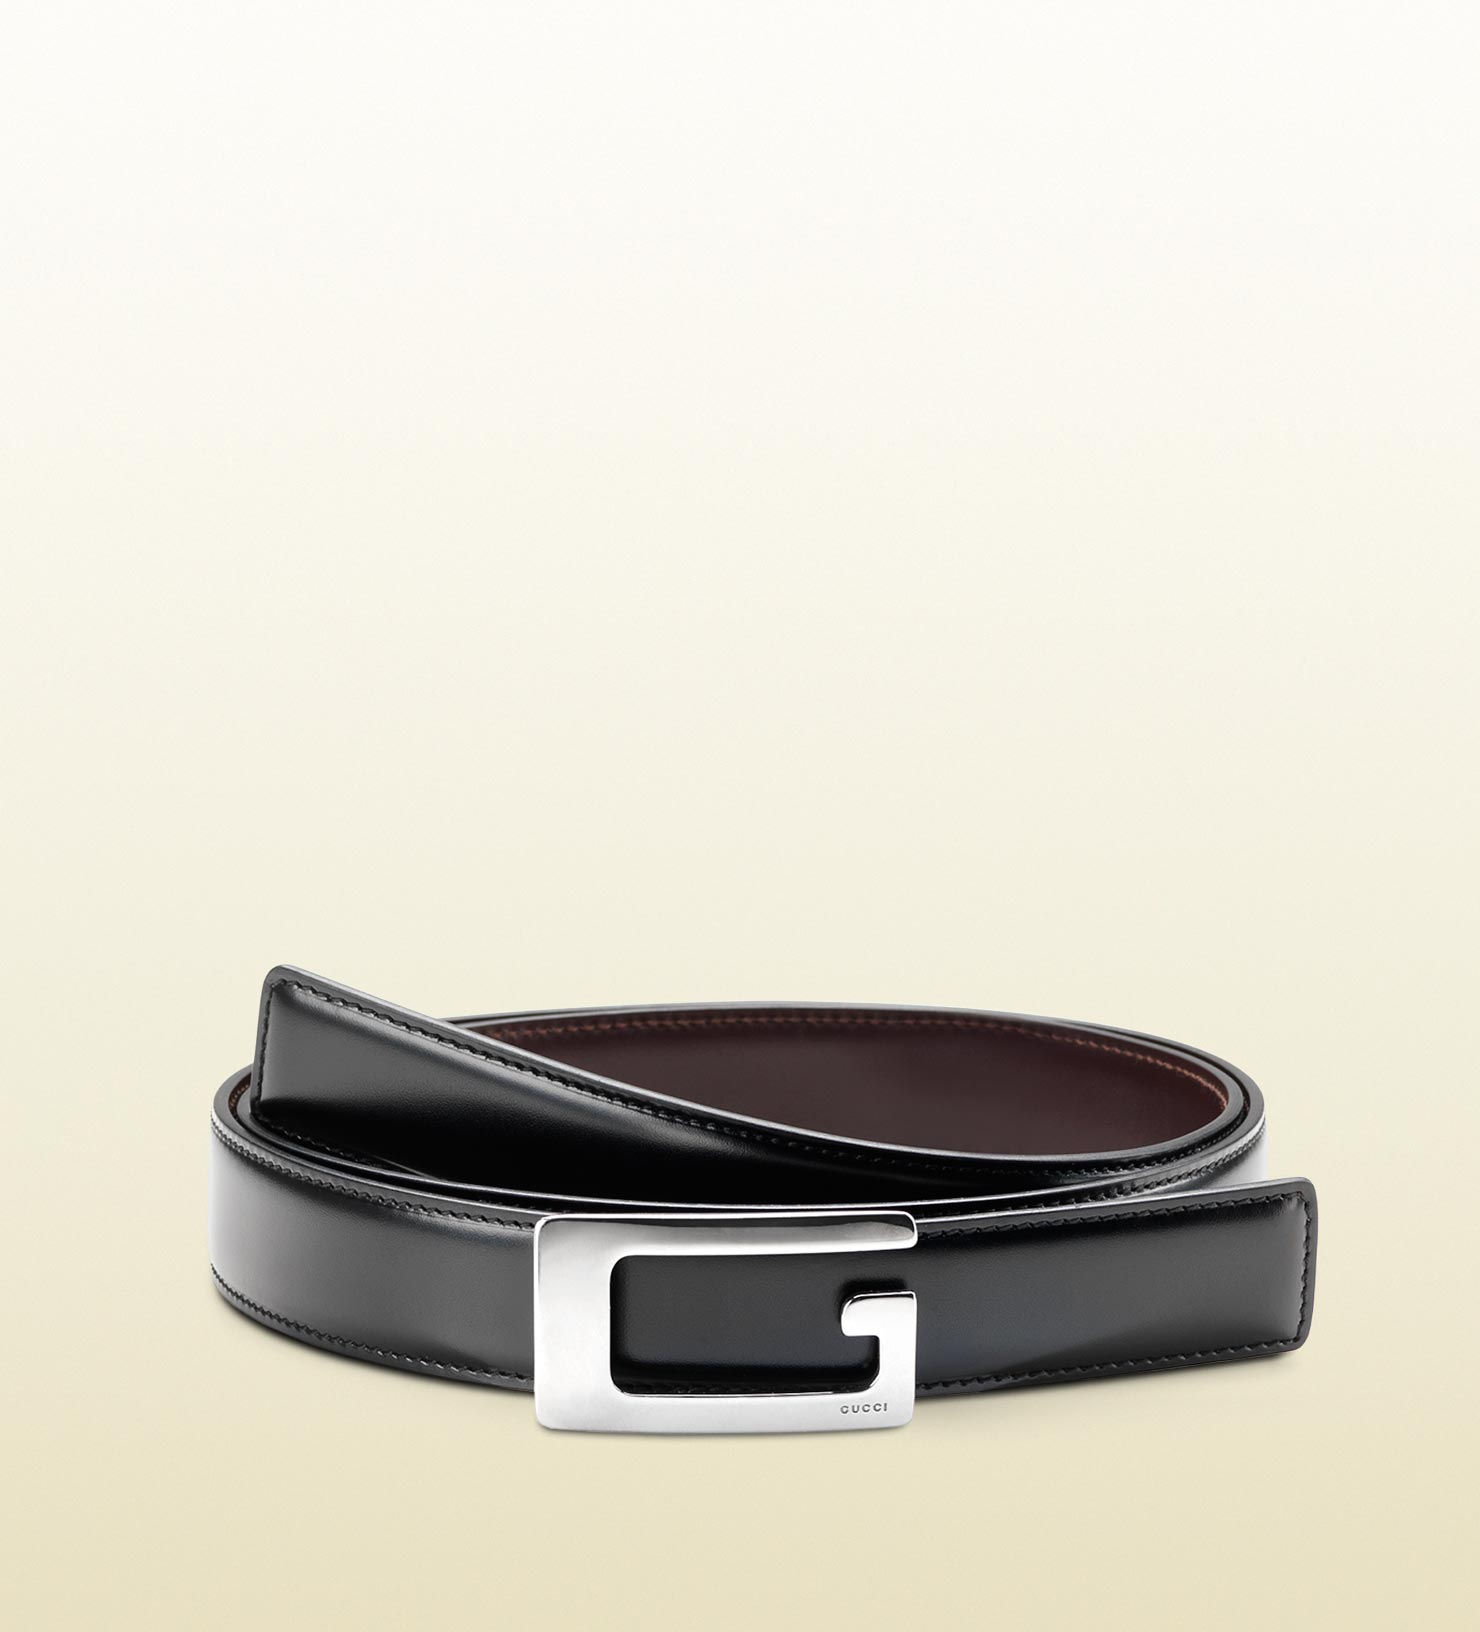 8e4faf9cb Gucci Reversible Leather Belt With Rectangular G Buckle in Black for ...